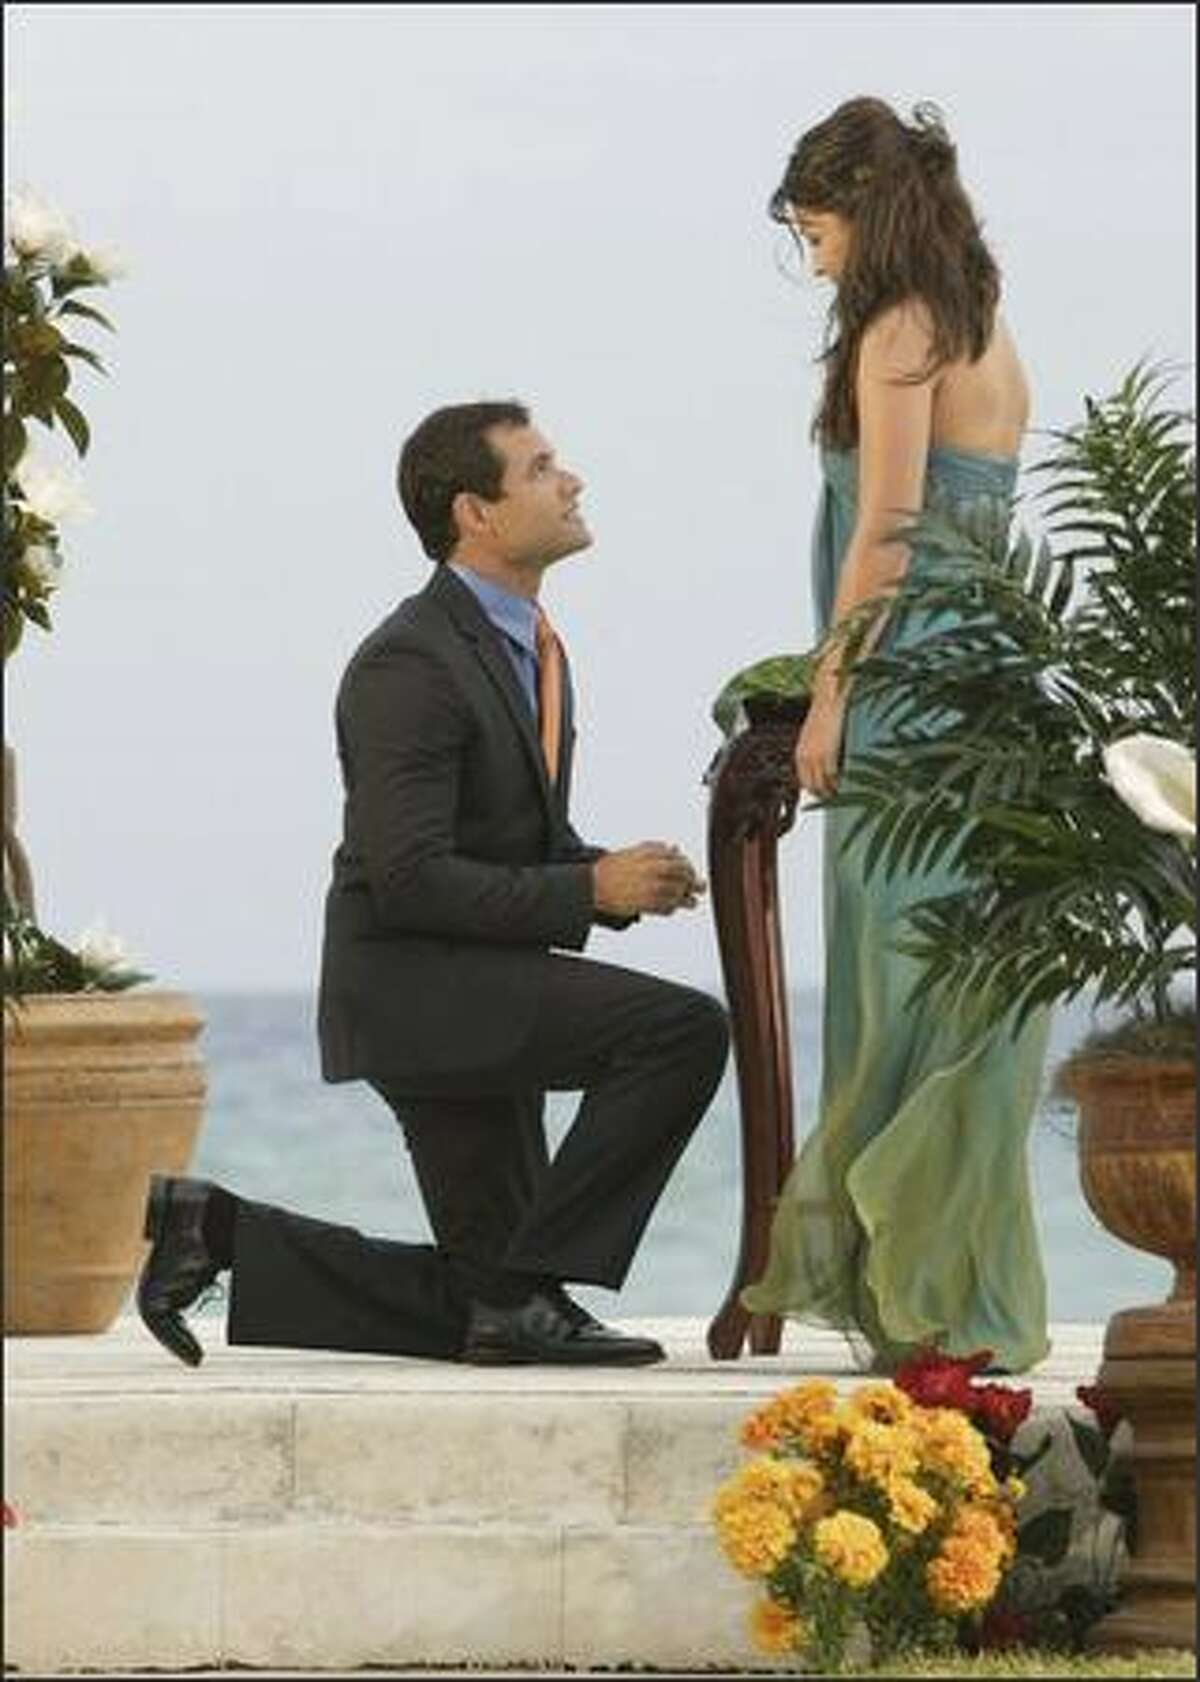 """Jason Mesnick of Kirkland proposes to DeAnna Pappas on ABC's """"The Bachelorette"""" on Monday, but she told him she was in love with the show's other finalist."""